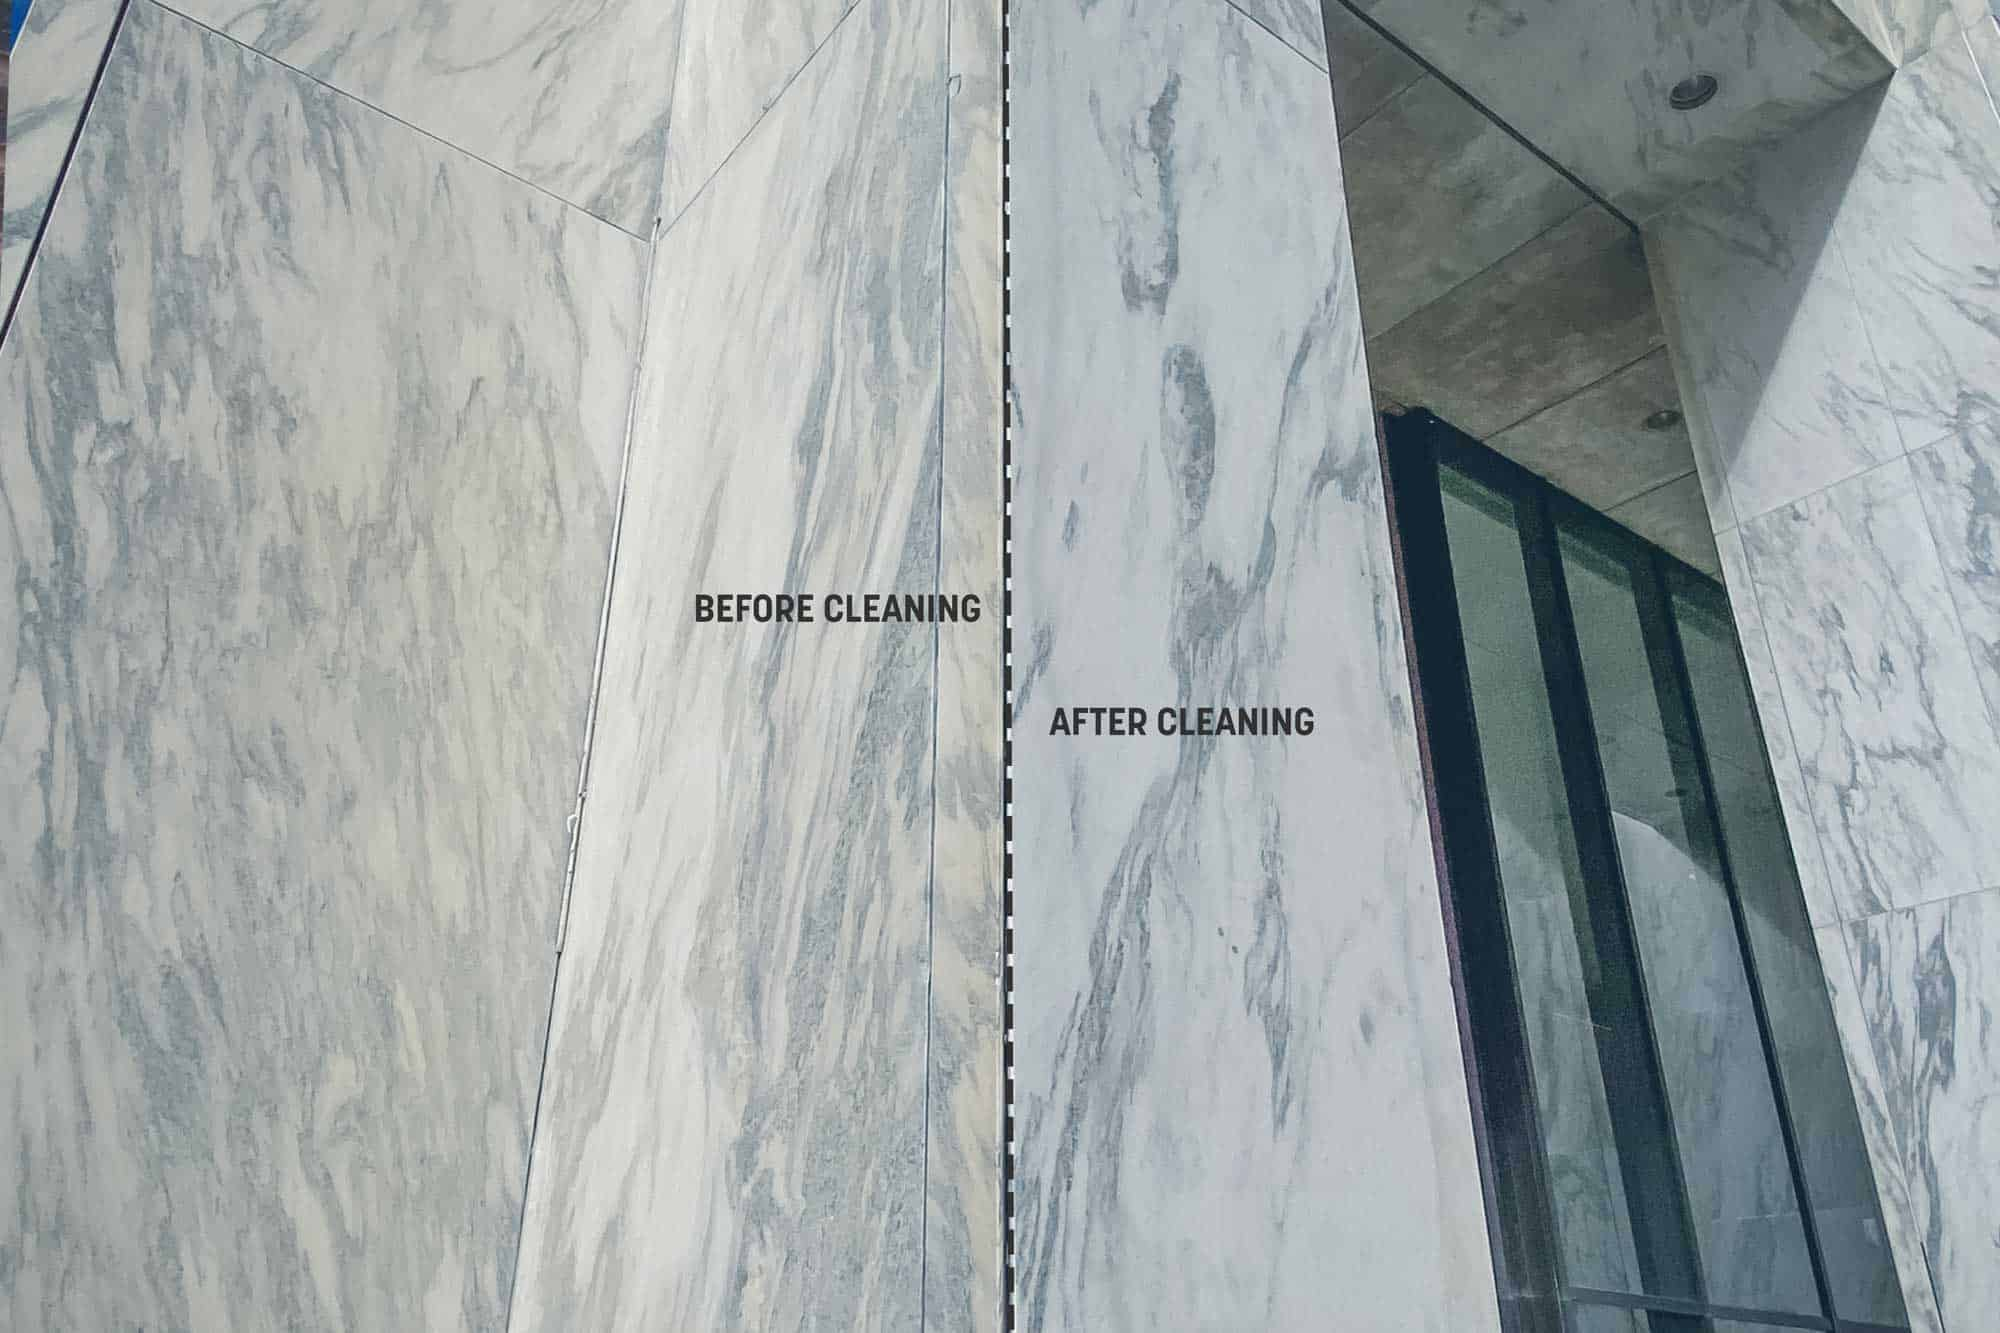 PROSOCO-liquid-marble-cleaner-before-and-after